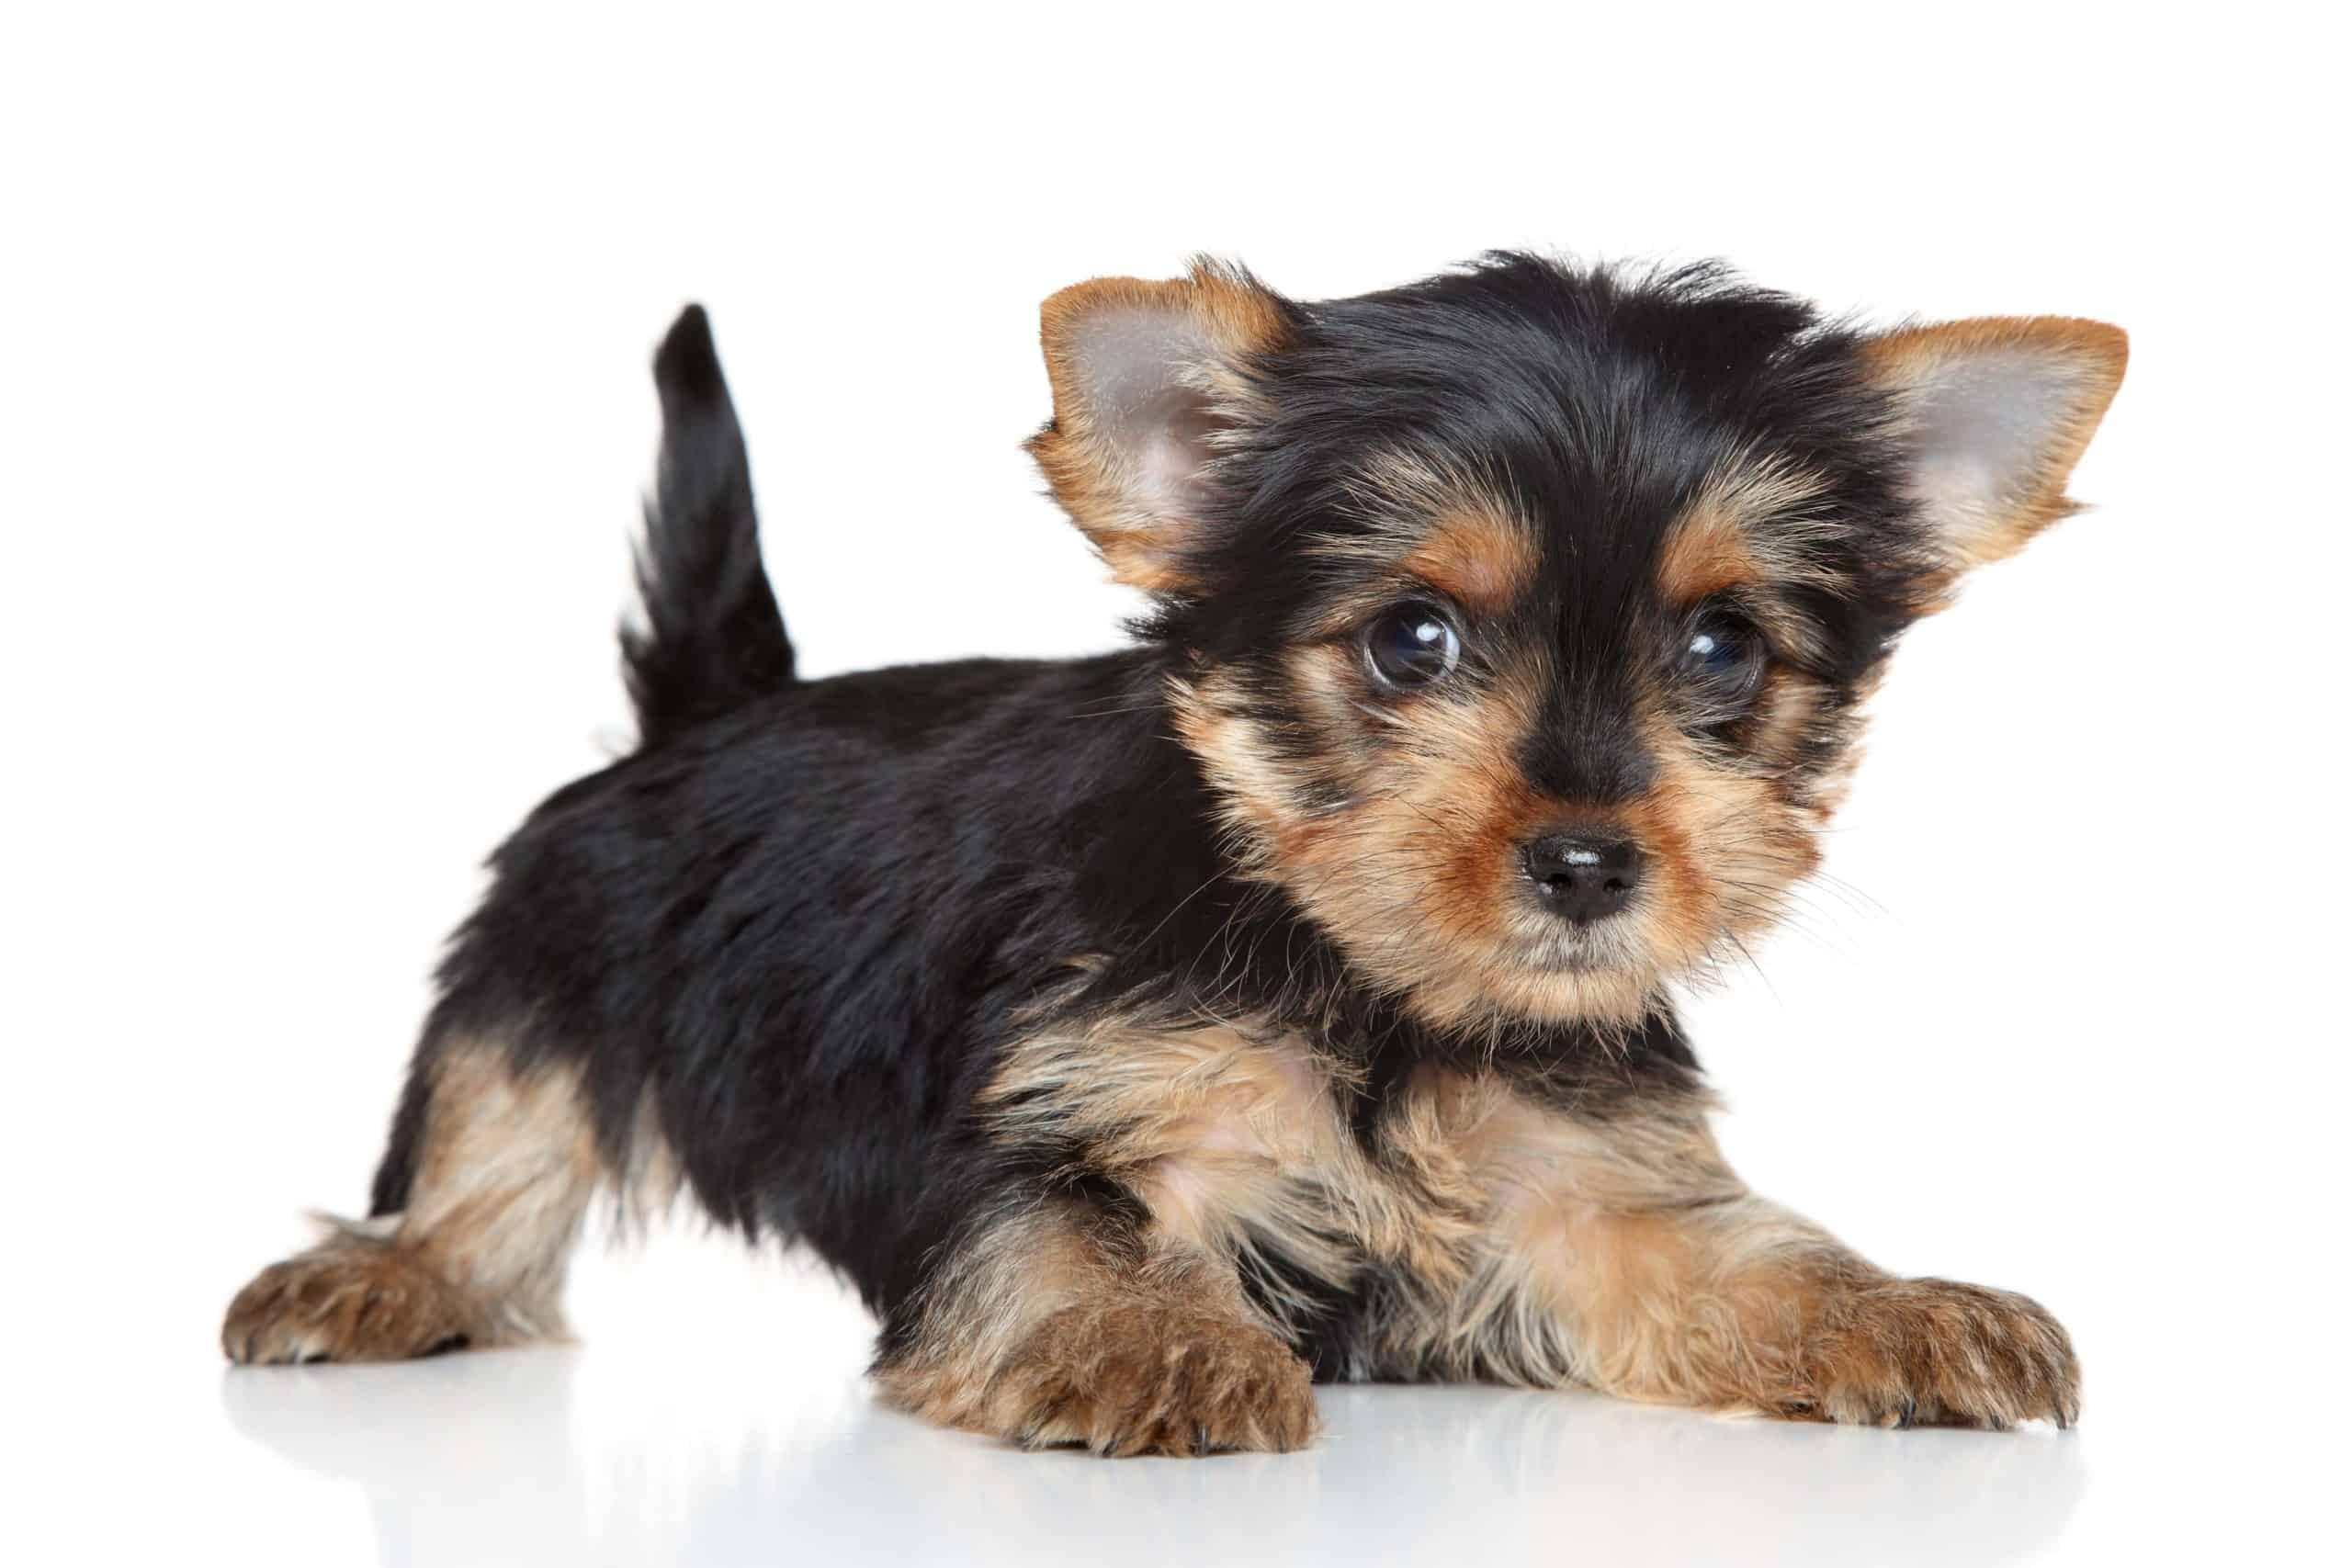 Yorkshire terrier puppy on white background. Yorkshire terriers may think they are big and scary, but in reality they are tiny and not threatening. They do, however, bark, which can alert you to intruders or other danger.